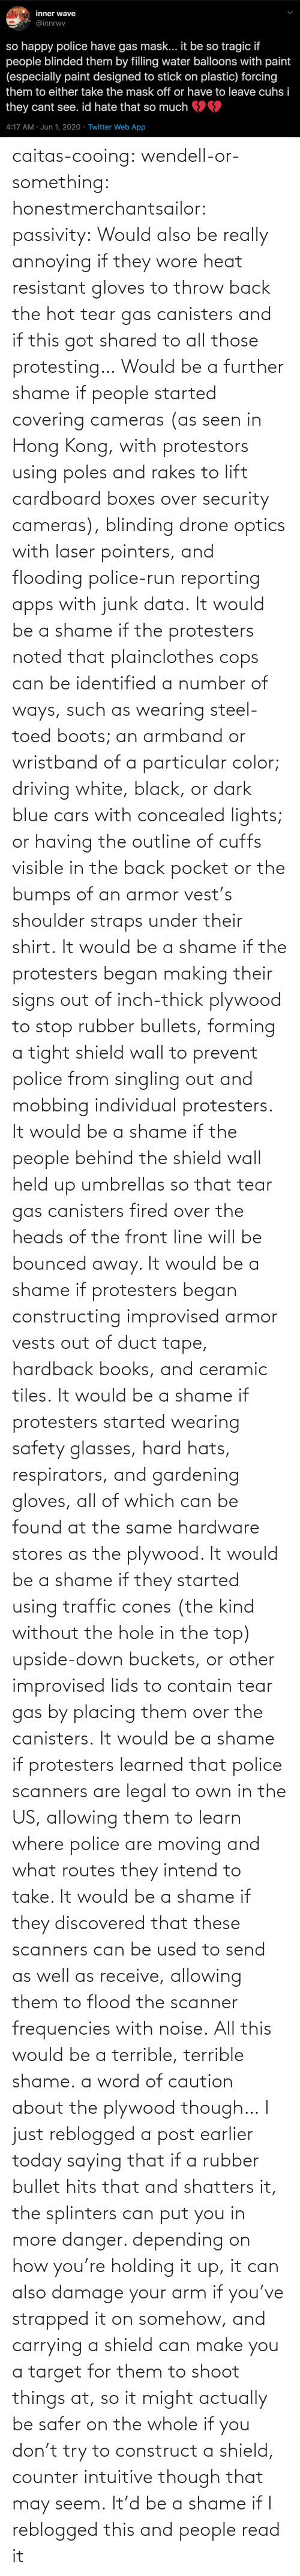 Wiki: caitas-cooing:  wendell-or-something: honestmerchantsailor:  passivity: Would also be really annoying if they wore heat resistant gloves to throw back the hot tear gas canisters and if this got shared to all those protesting… Would be a further shame if people started covering cameras (as seen in Hong Kong, with protestors using poles and rakes to lift cardboard boxes over security cameras), blinding drone optics with laser pointers, and flooding police-run reporting apps with junk data. It would be a shame if the protesters noted that plainclothes cops can be identified a number of ways, such as wearing steel-toed boots; an armband or wristband of a particular color; driving white, black, or dark blue cars with concealed lights; or having the outline of cuffs visible in the back pocket or the bumps of an armor vest's shoulder straps under their shirt. It would be a shame if the protesters began making their signs out of inch-thick plywood to stop rubber bullets, forming a tight shield wall to prevent police from singling out and mobbing individual protesters. It would be a shame if the people behind the shield wall held up umbrellas so that tear gas canisters fired over the heads of the front line will be bounced away. It would be a shame if protesters began constructing improvised armor vests out of duct tape, hardback books, and ceramic tiles. It would be a shame if protesters started wearing safety glasses, hard hats, respirators, and gardening gloves, all of which can be found at the same hardware stores as the plywood. It would be a shame if they started using traffic cones (the kind without the hole in the top) upside-down buckets, or other improvised lids to contain tear gas by placing them over the canisters. It would be a shame if protesters learned that police scanners are legal to own in the US, allowing them to learn where police are moving and what routes they intend to take. It would be a shame if they discovered that these scanners can be used to send as well as receive, allowing them to flood the scanner frequencies with noise. All this would be a terrible, terrible shame.    a word of caution about the plywood though… I just reblogged a post earlier today saying that if a rubber bullet hits that and shatters it, the splinters can put you in more danger. depending on how you're holding it up, it can also damage your arm if you've strapped it on somehow, and carrying a shield can make you a target for them to shoot things at, so it might actually be safer on the whole if you don't try to construct a shield, counter intuitive though that may seem.    It'd be a shame if I reblogged this and people read it